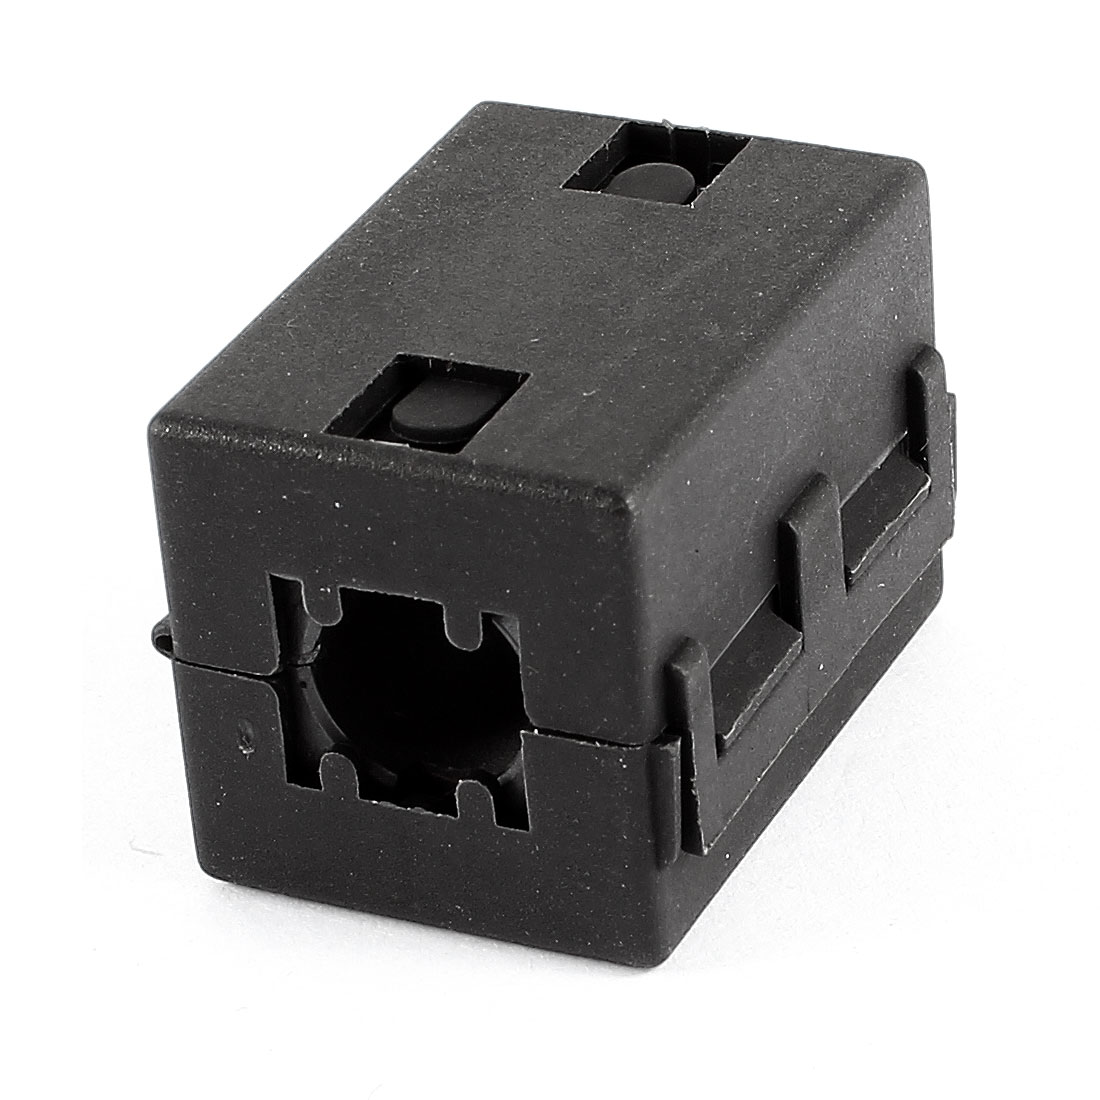 10mm Cable Hole Dia Clip On UF100B Ferrite Core Square Cable EMI Noise Suppressor Filter Black